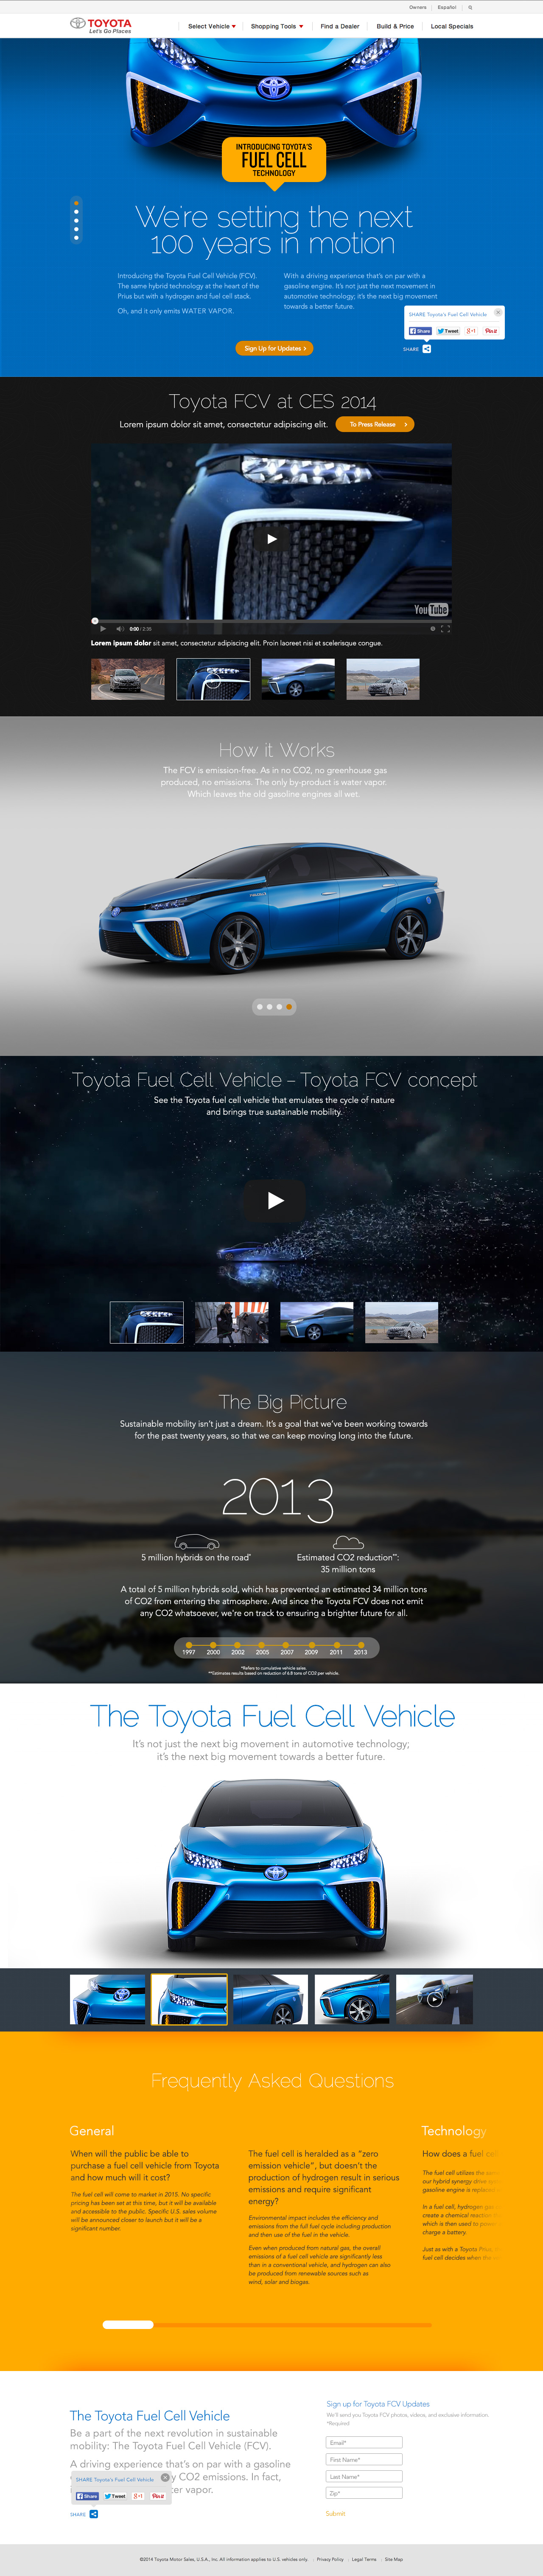 Toyota Fuel Cell Vehicle Screenshot #1